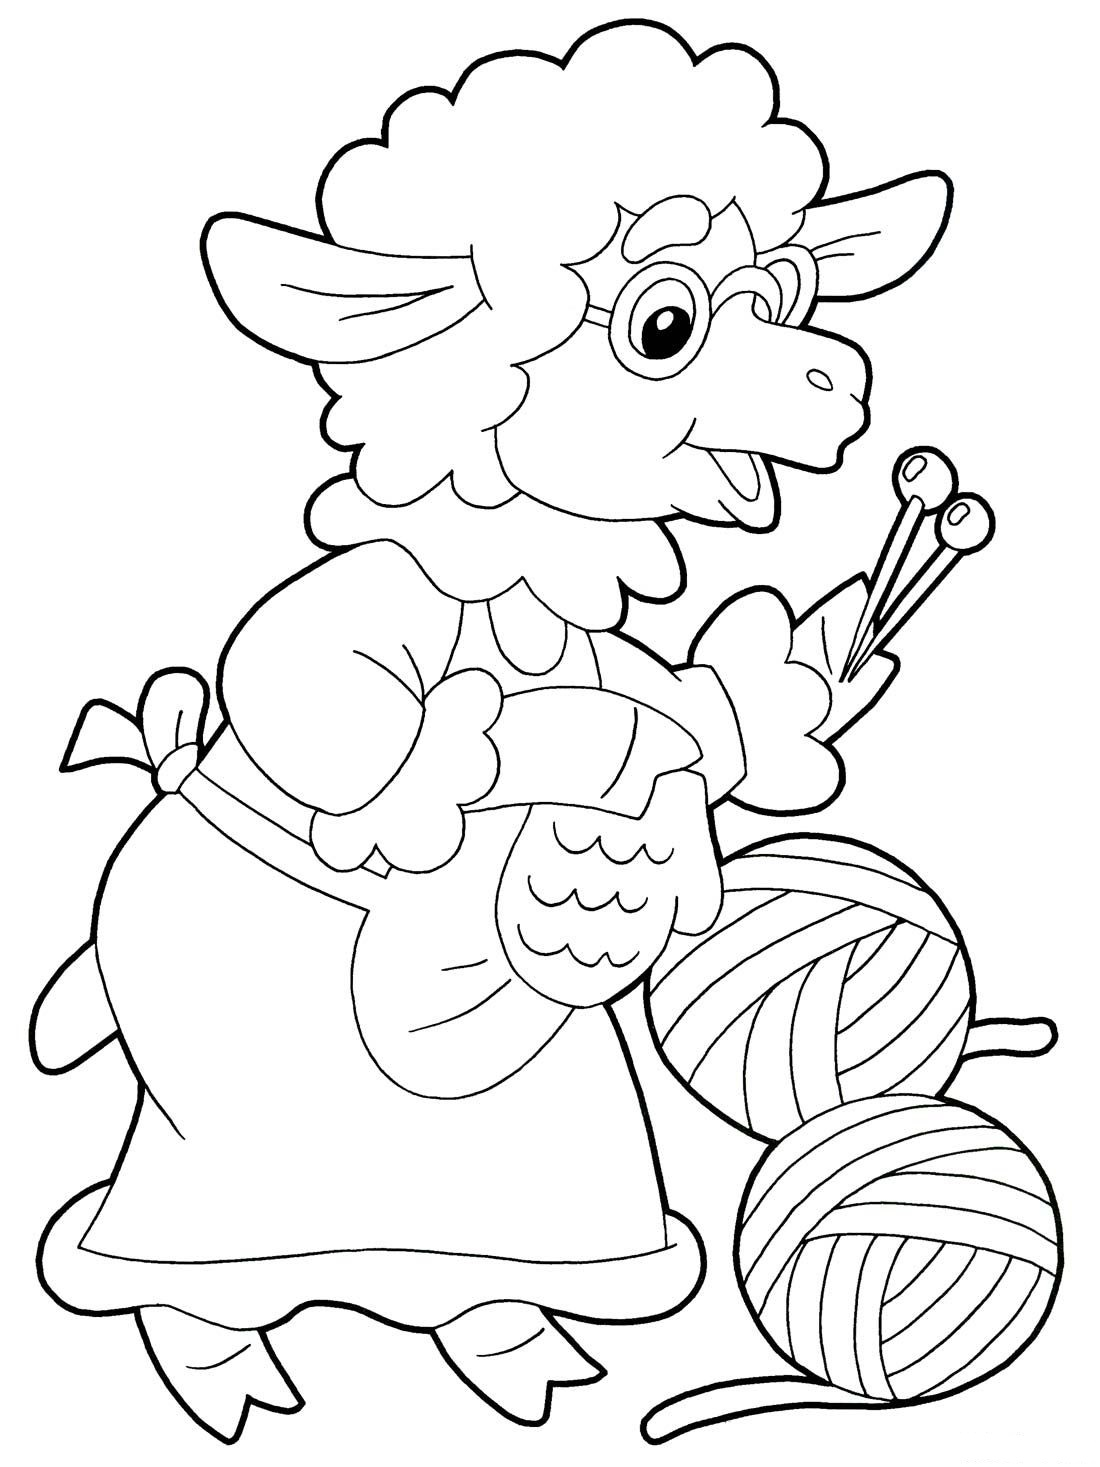 sheep colouring free printable sheep coloring pages for kids colouring sheep